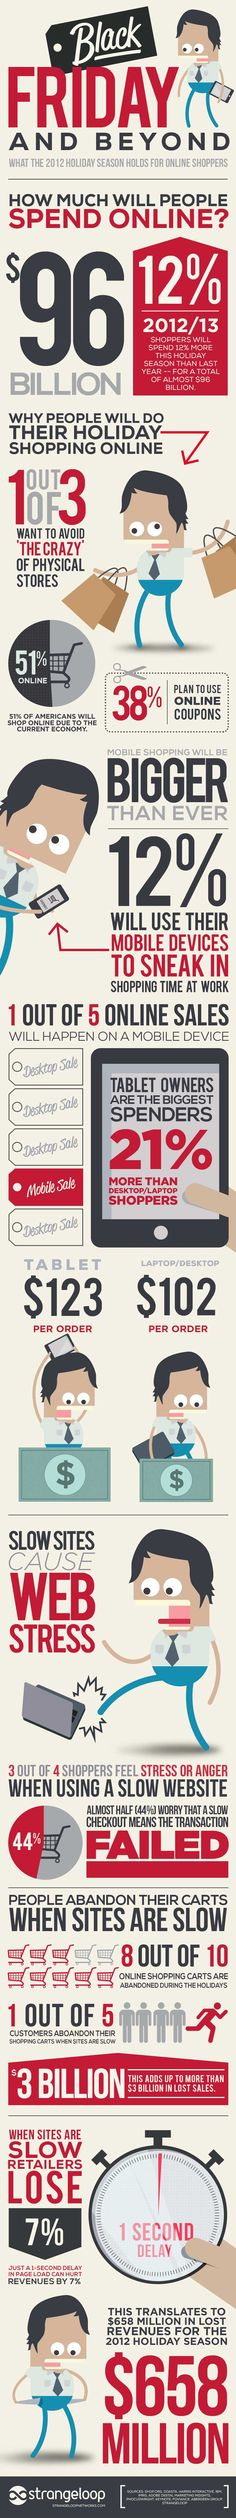 Black Friday 2012 and beyond #infographic